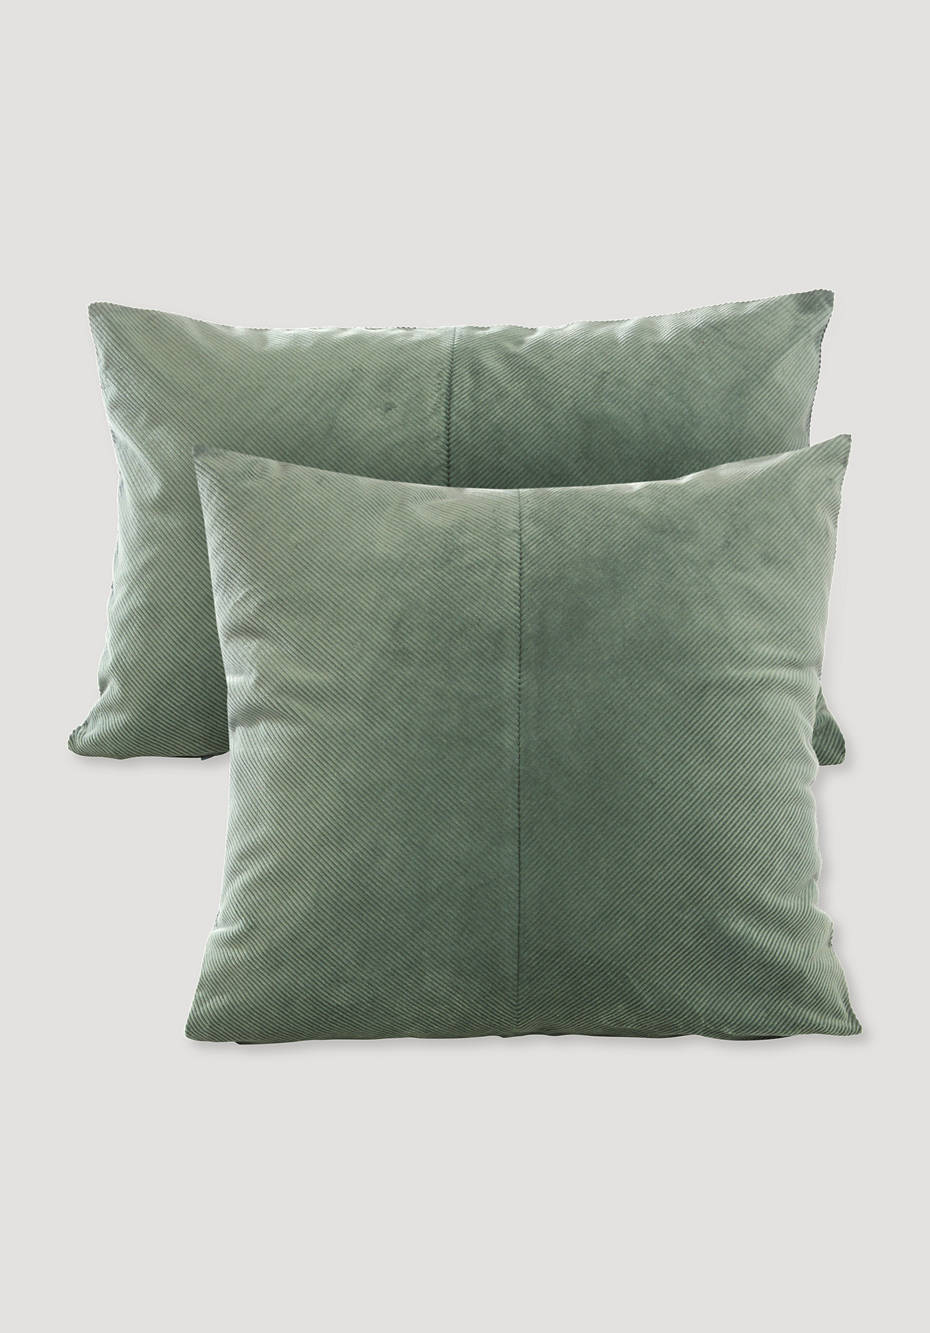 Cord cushion cover Joto